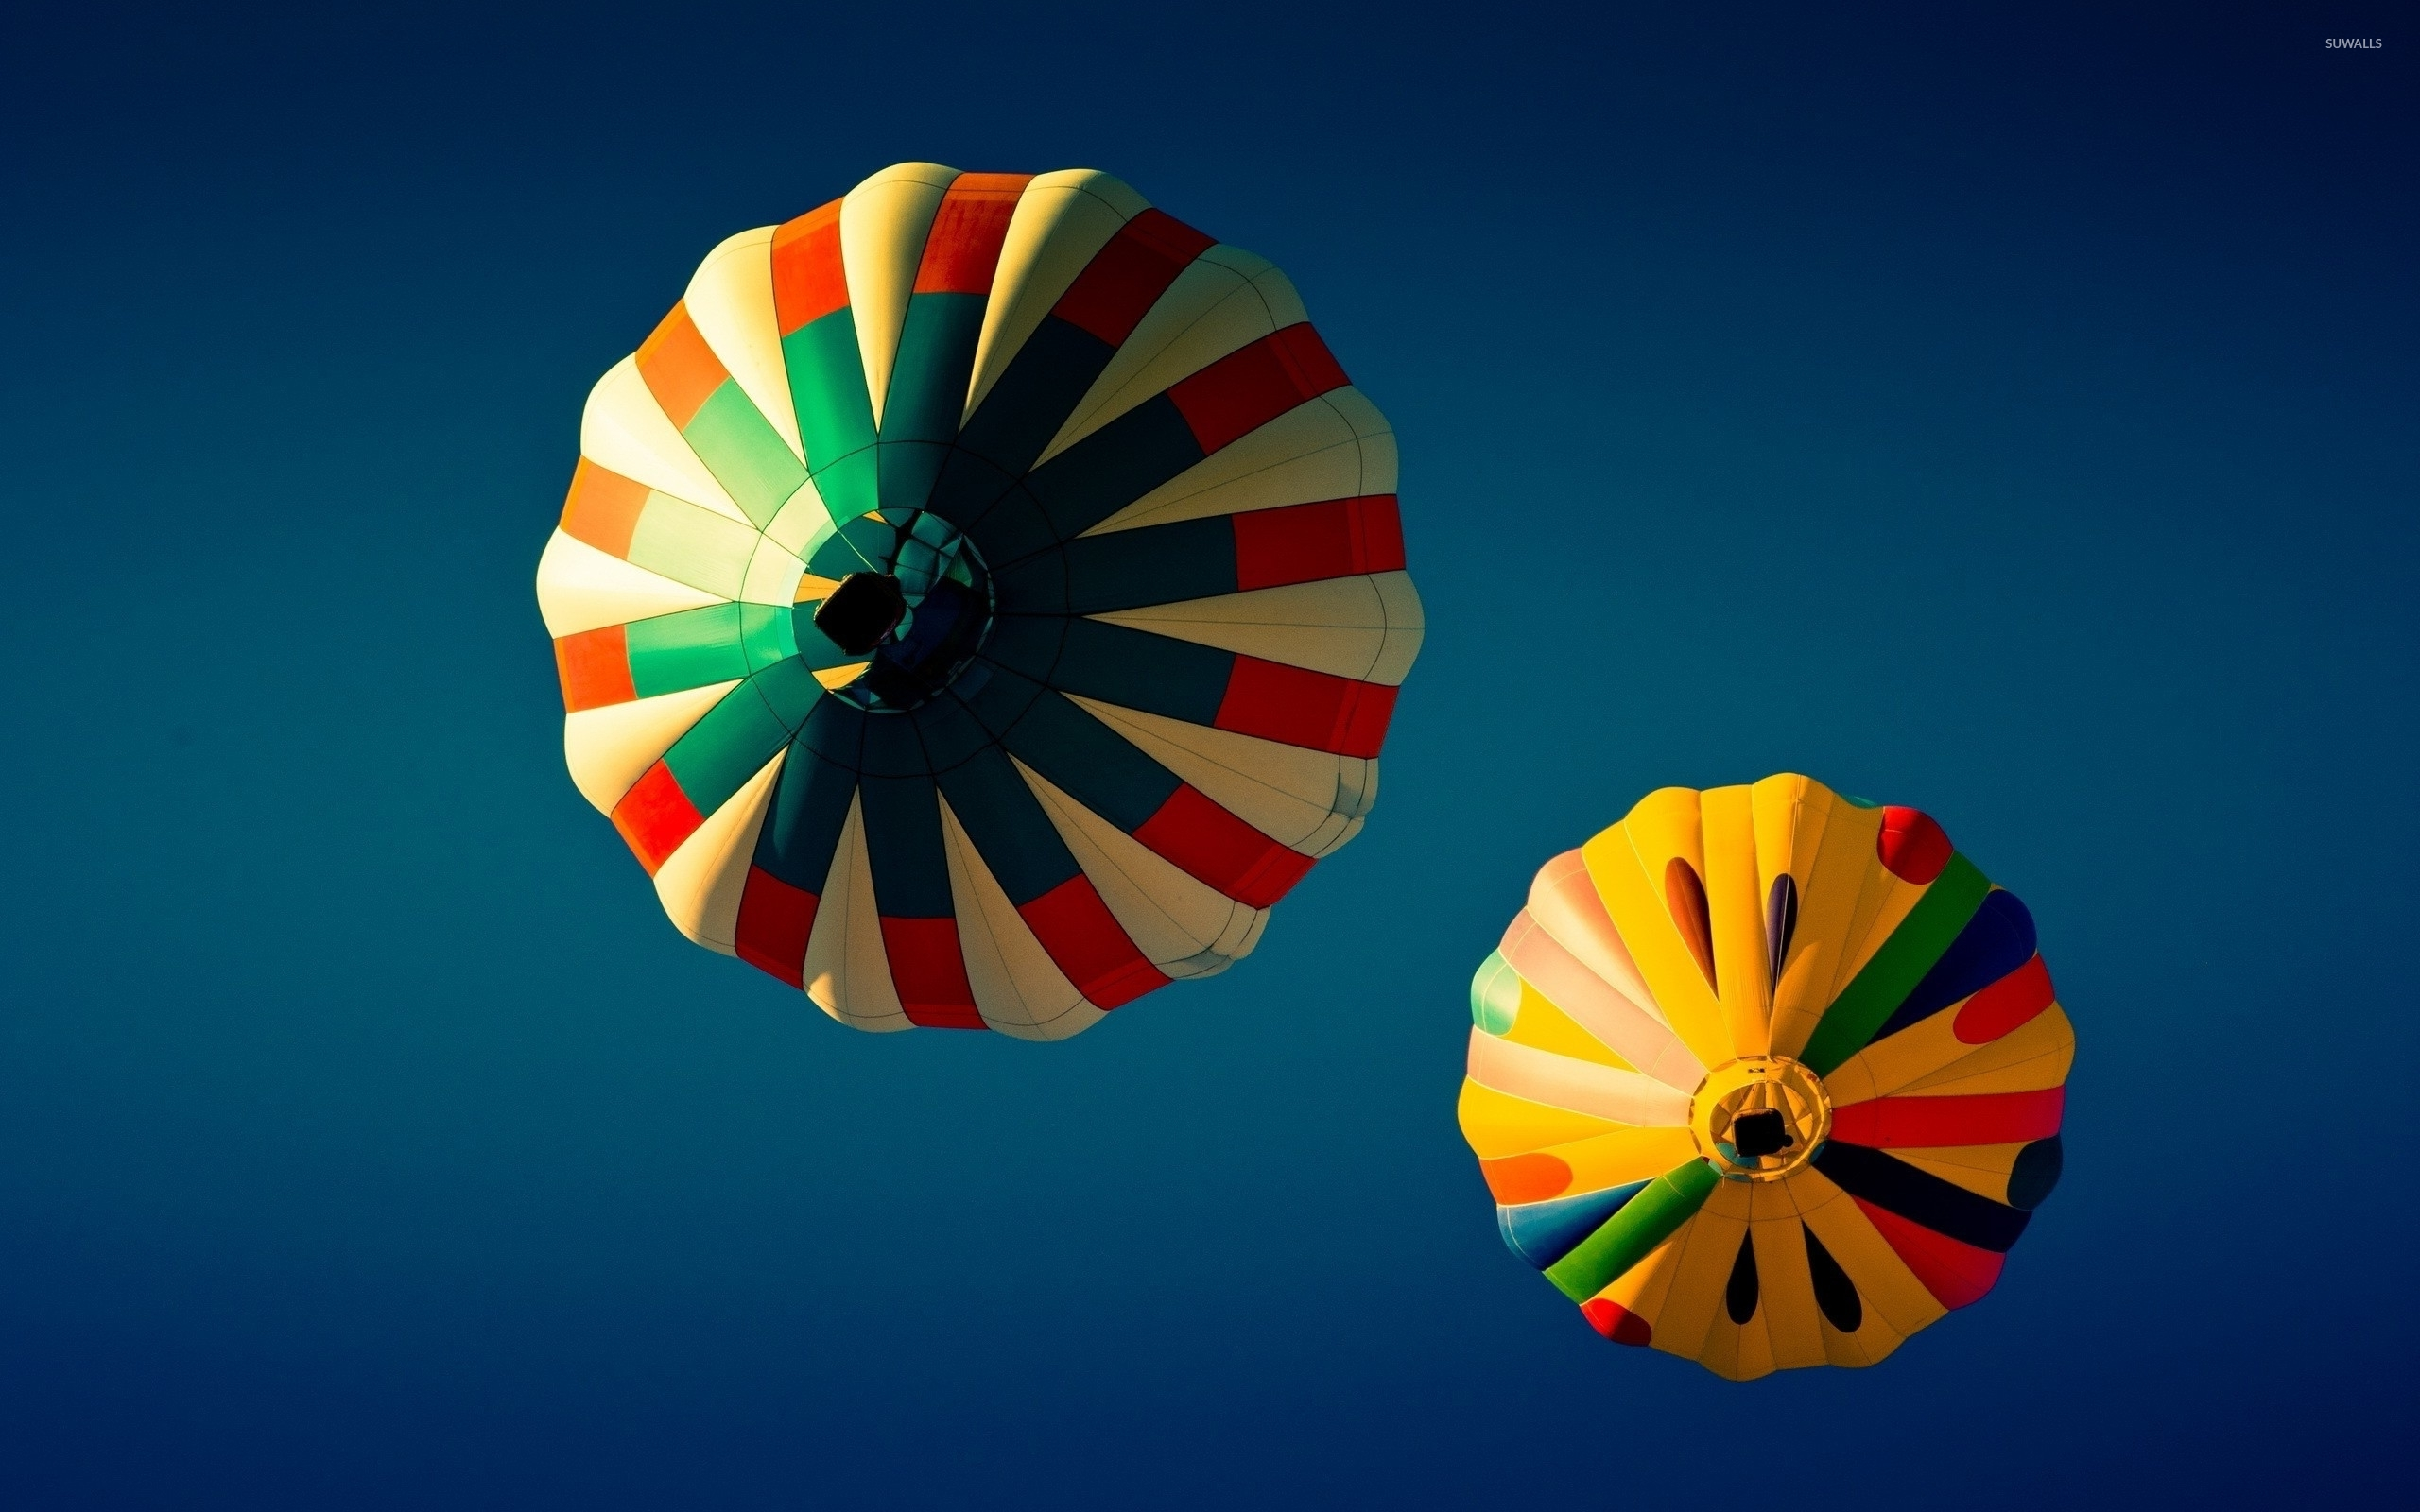 Colorful hot air balloons wallpaper   Photography wallpapers   51159 1280x800